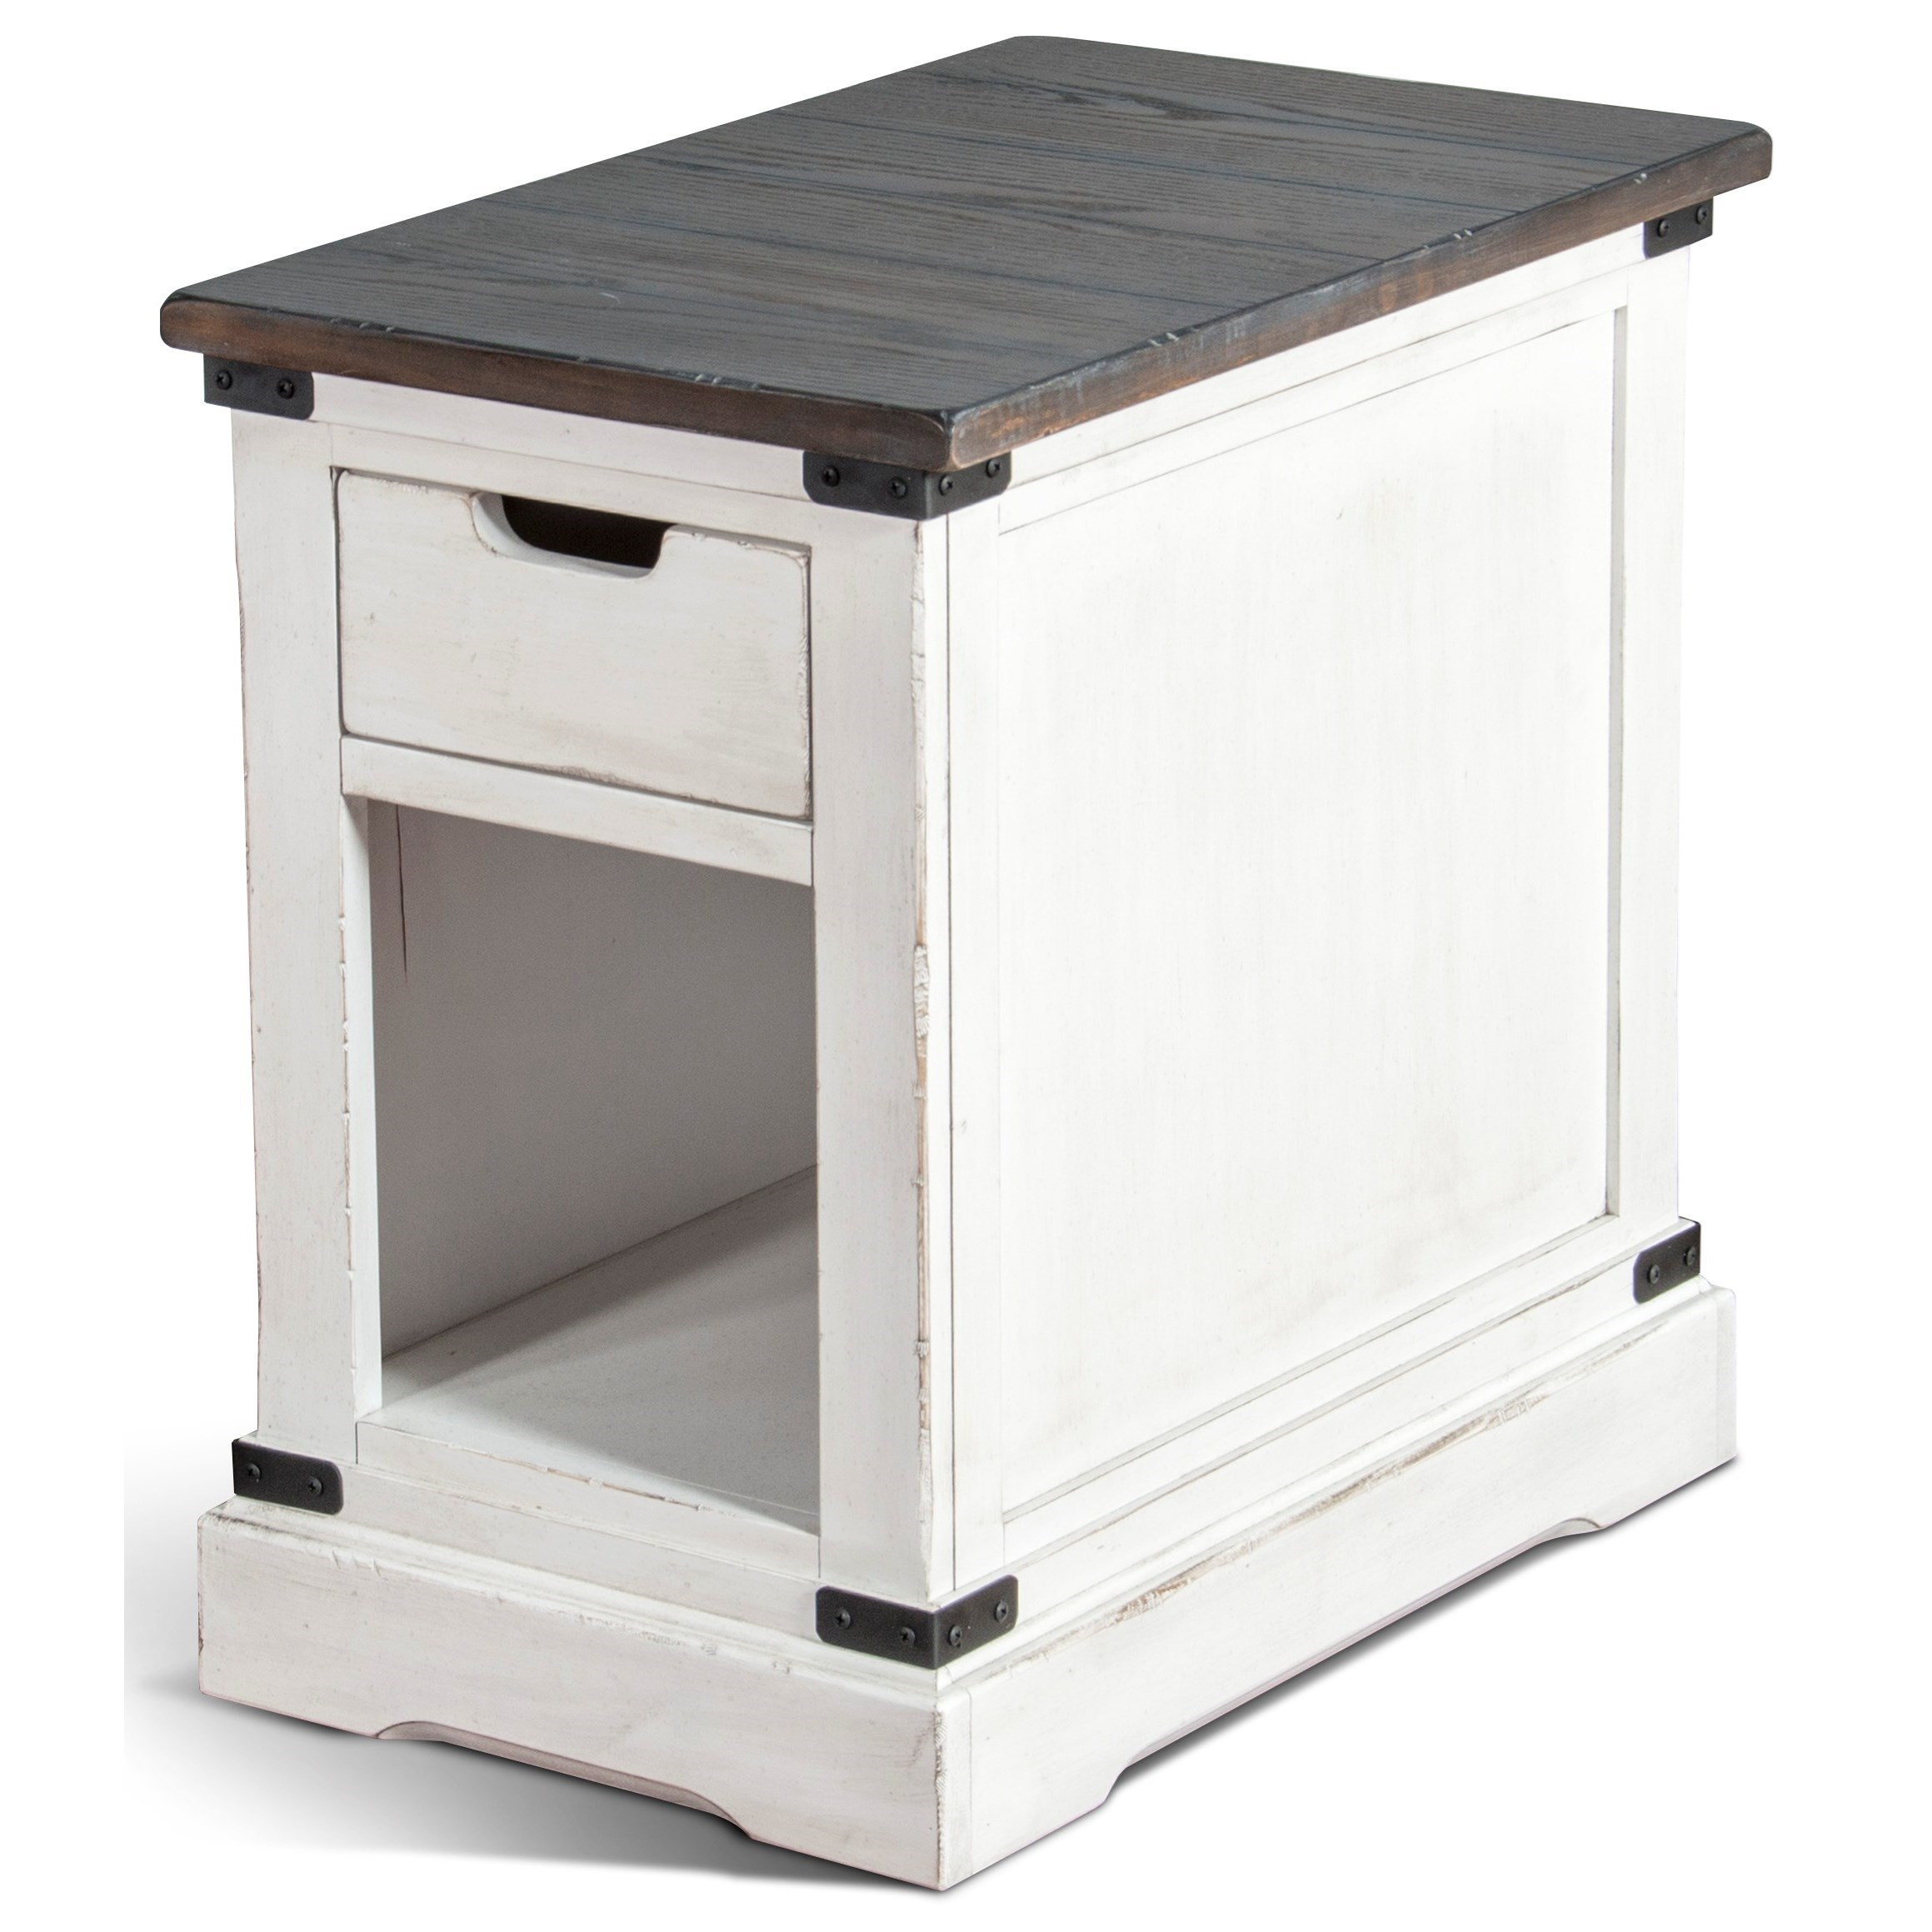 3270 Chair Side Table at Bennett's Furniture and Mattresses